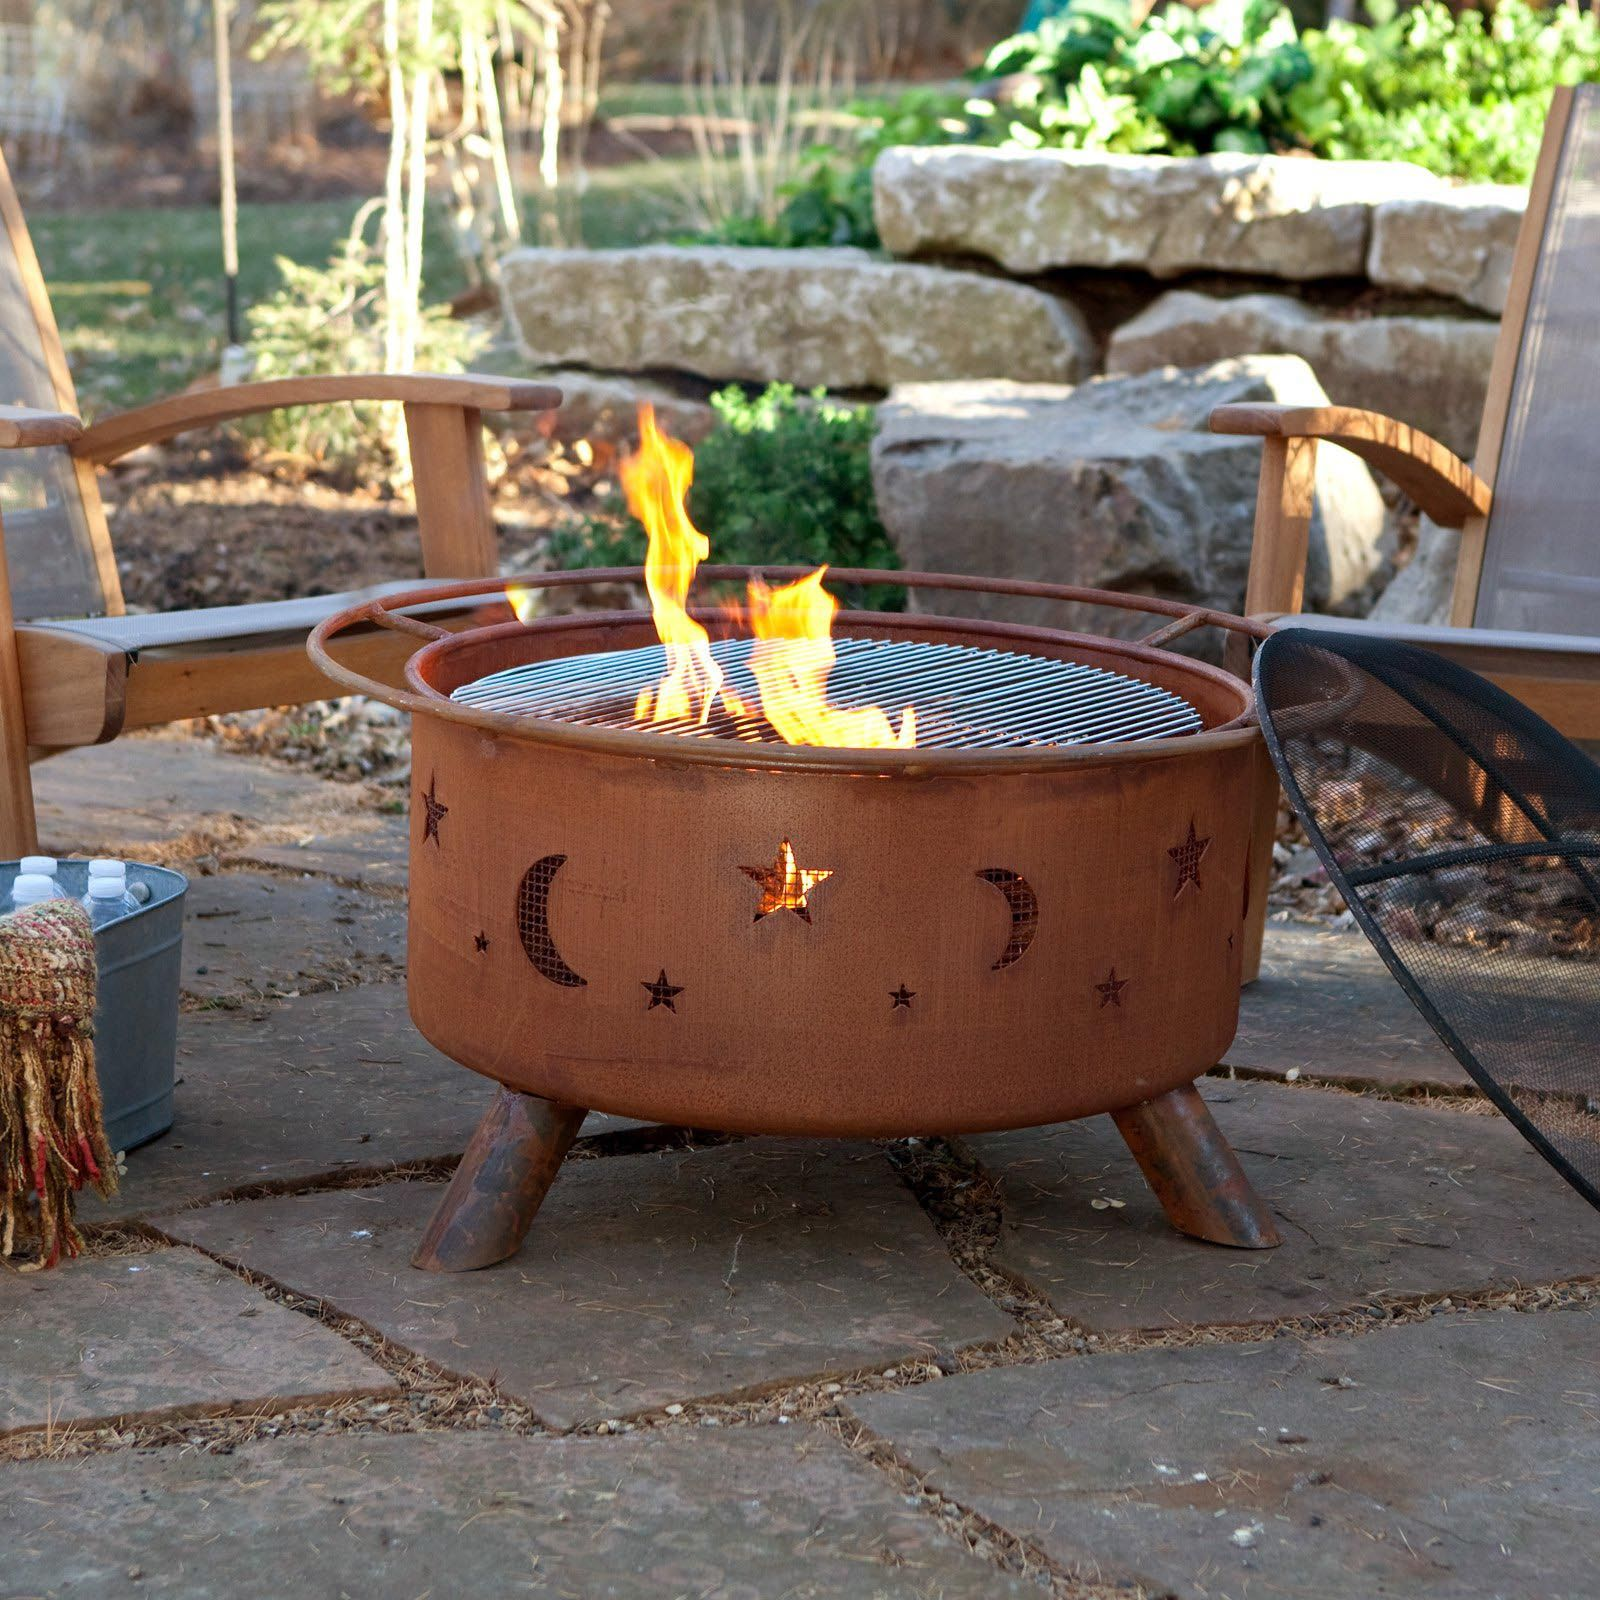 Fashionable Outdoor Fire Pit Accessories Outdoor Fire Pit Accessories Fire  Pit Pinterest Fire Pit Fire Pit Accessories Uk Fire Pit Accessories Calgary - Fire Pit Accessories In Fashionable Outdoor Fire Pit Accessories